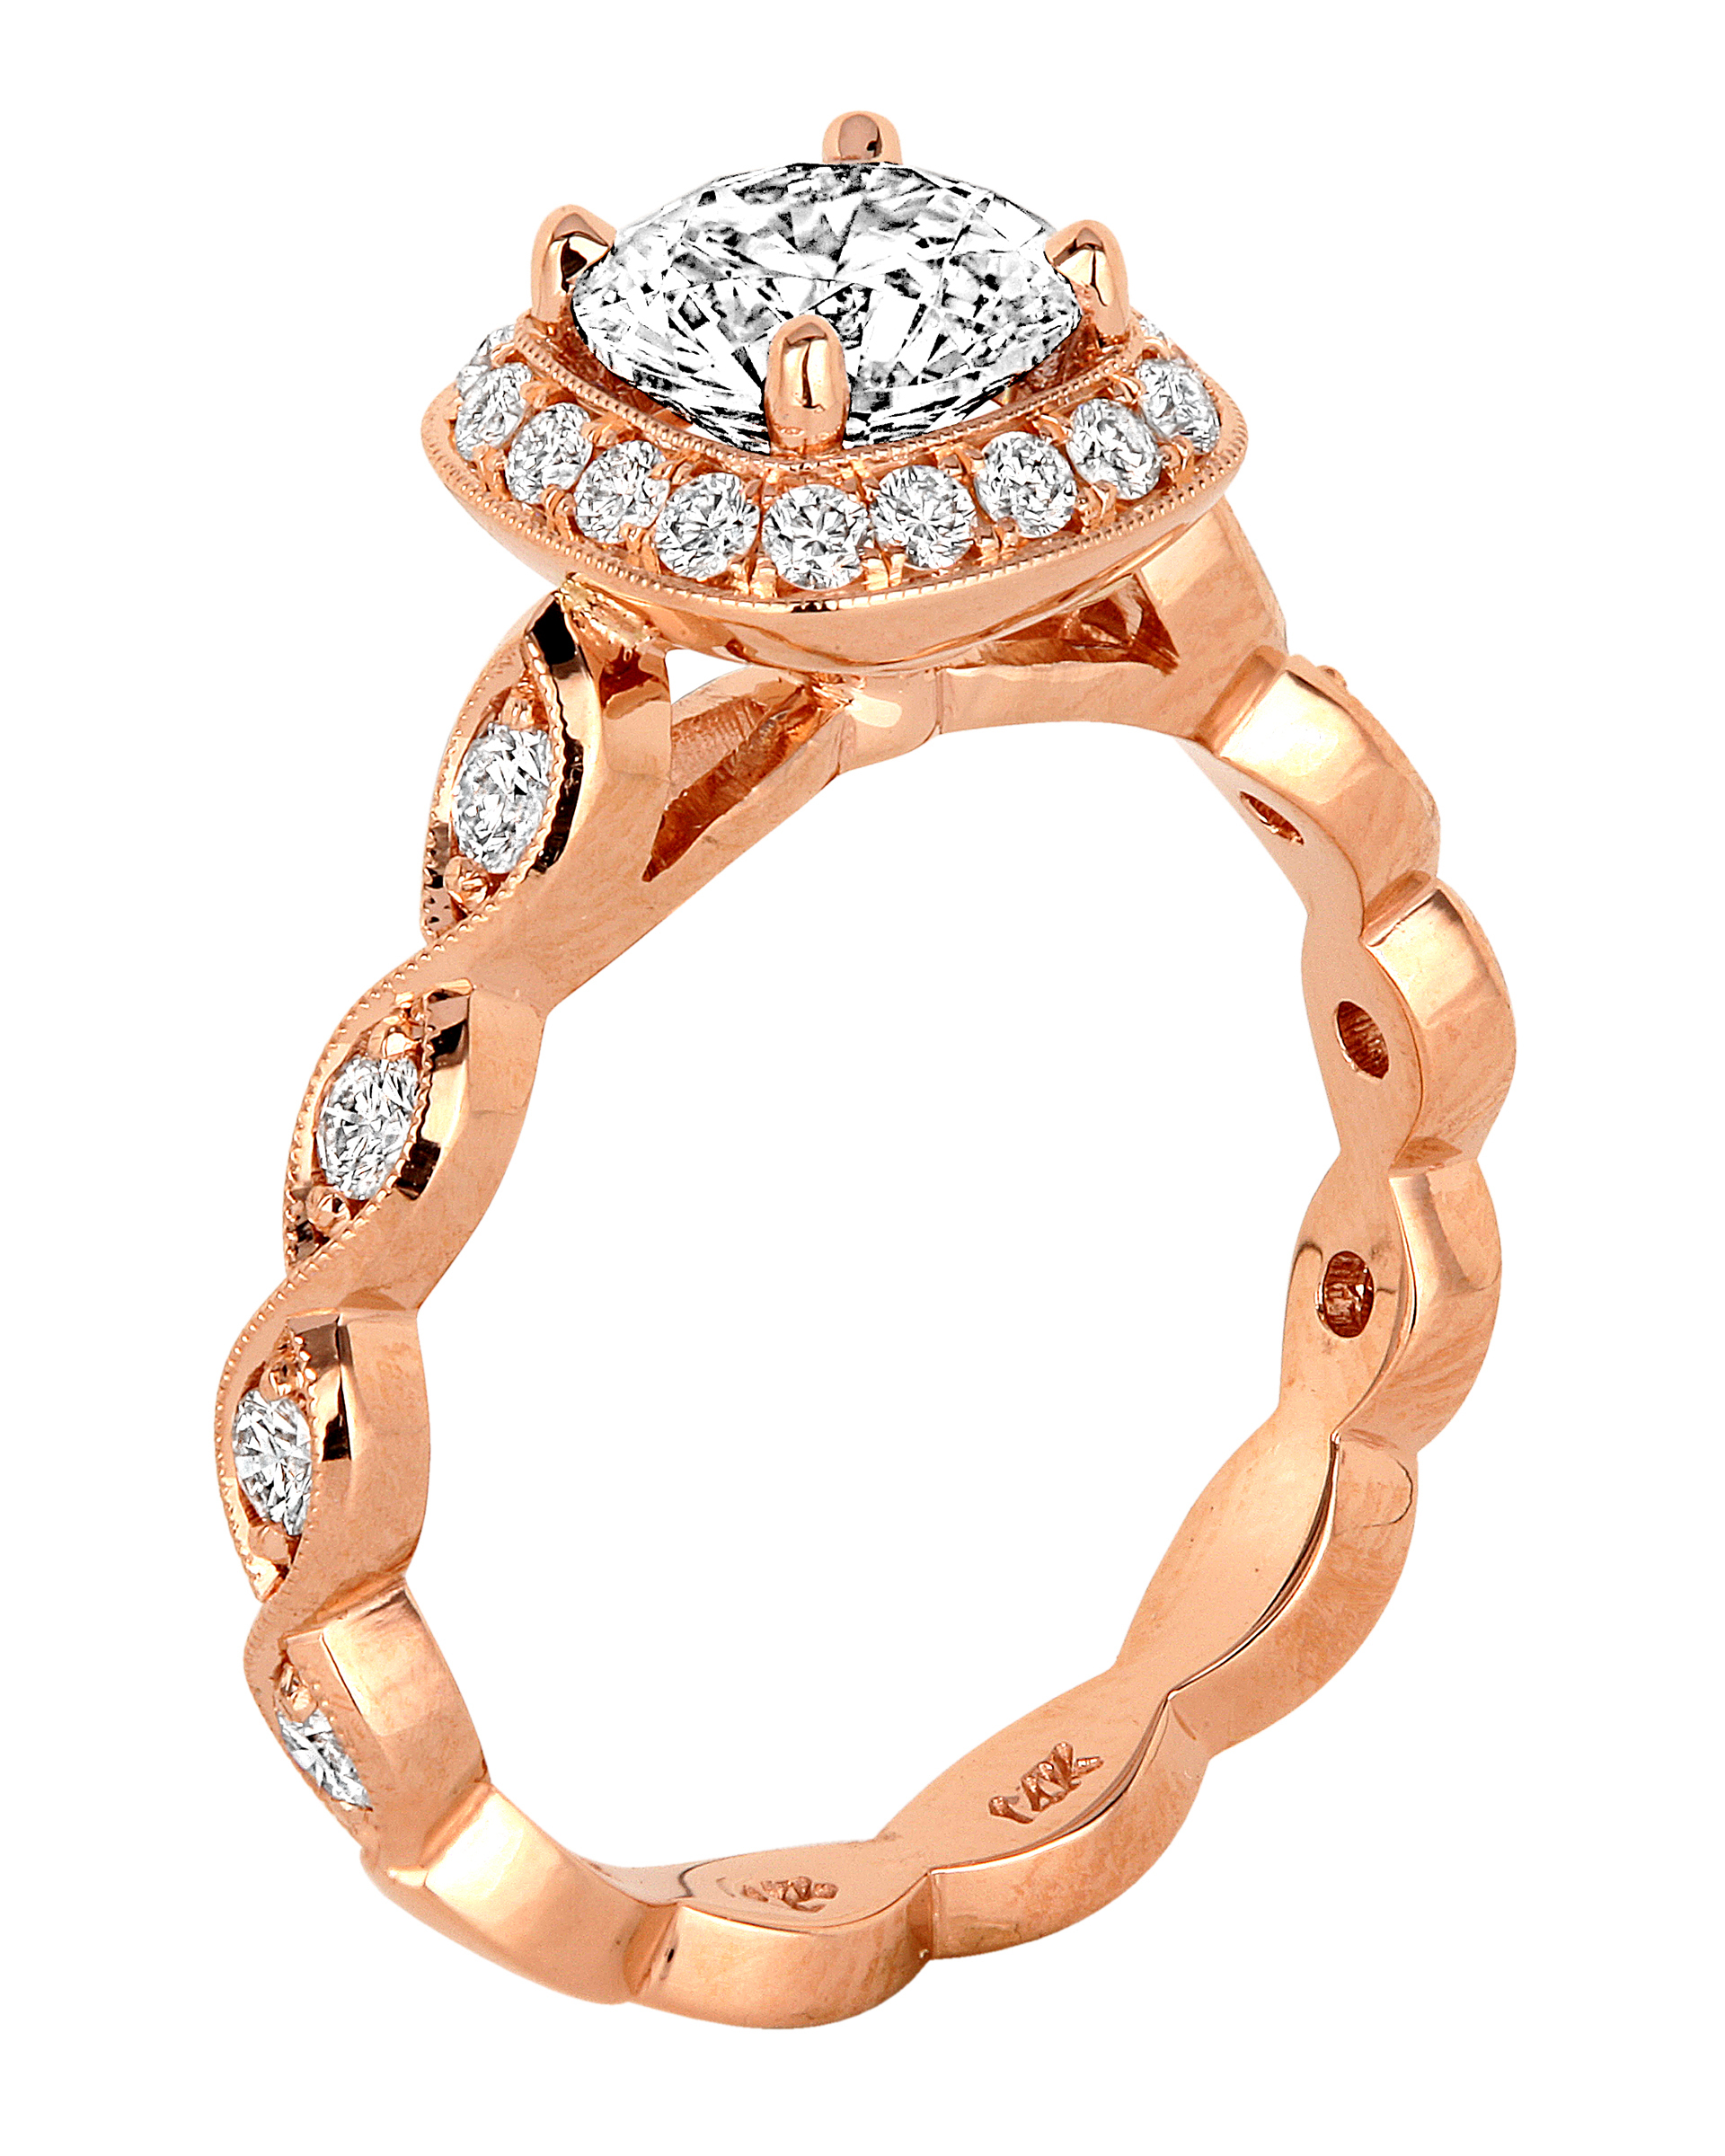 jack-kelege-rose-gold-halo-pave-band-engagment-ring-0816.jpg